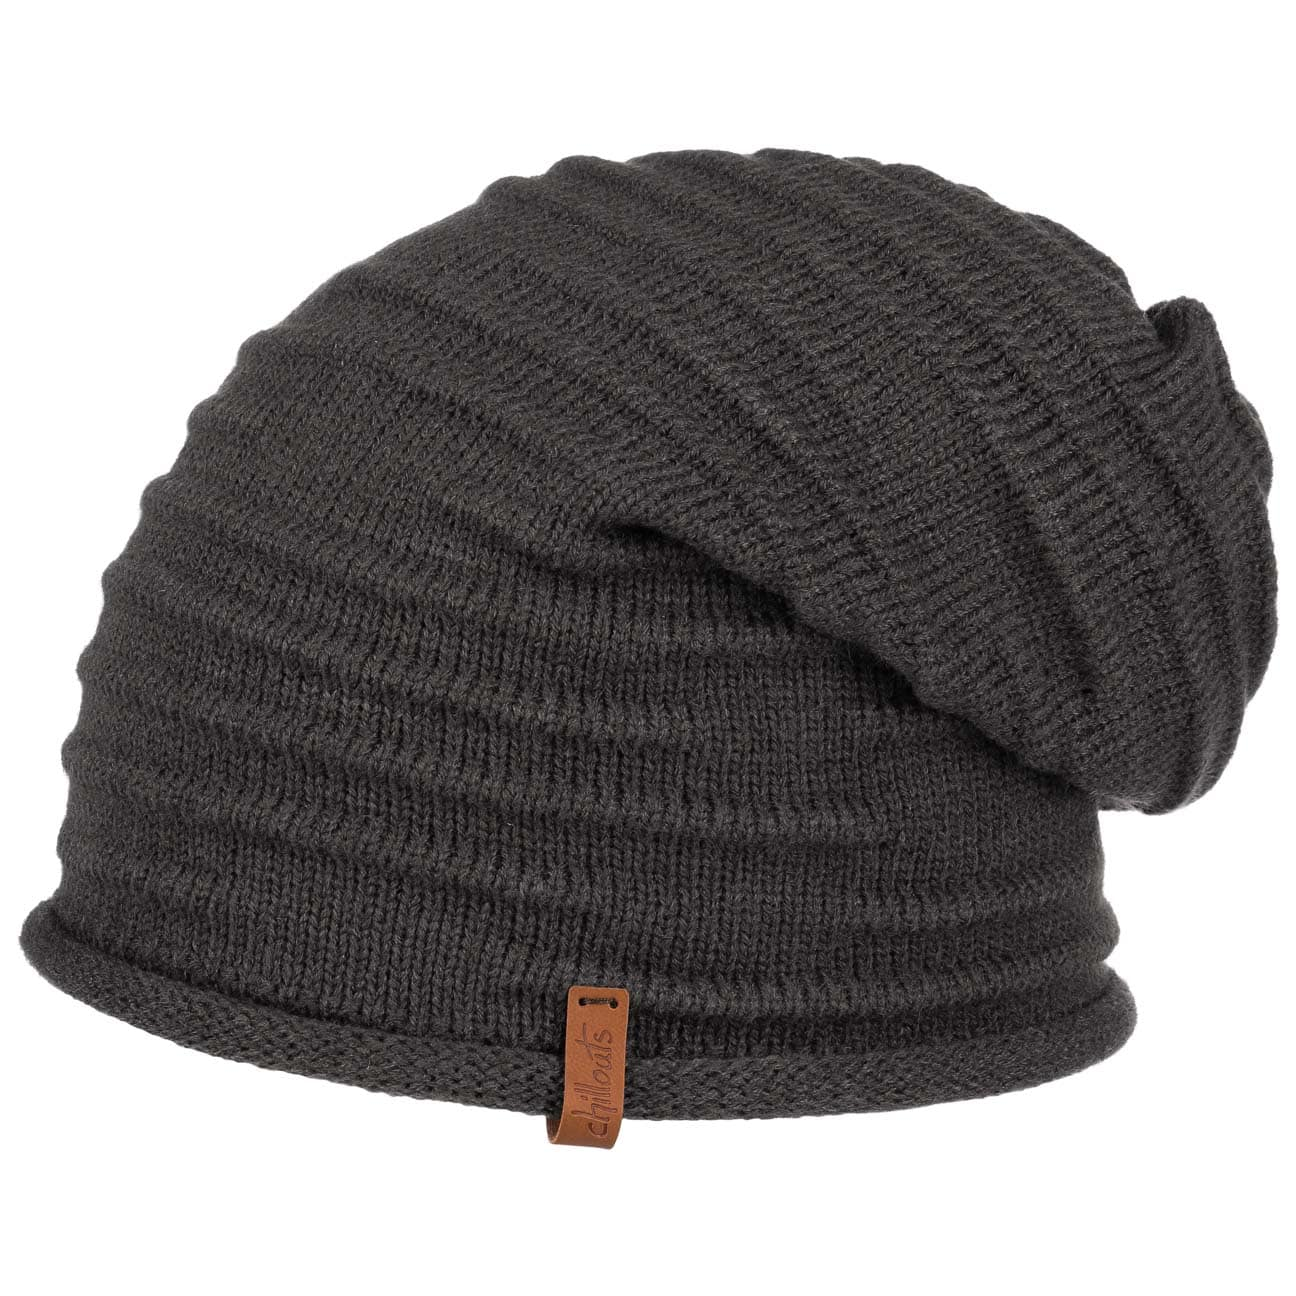 Bonnet Aarony Long Beanie by Chillouts  bonnet de grande taille